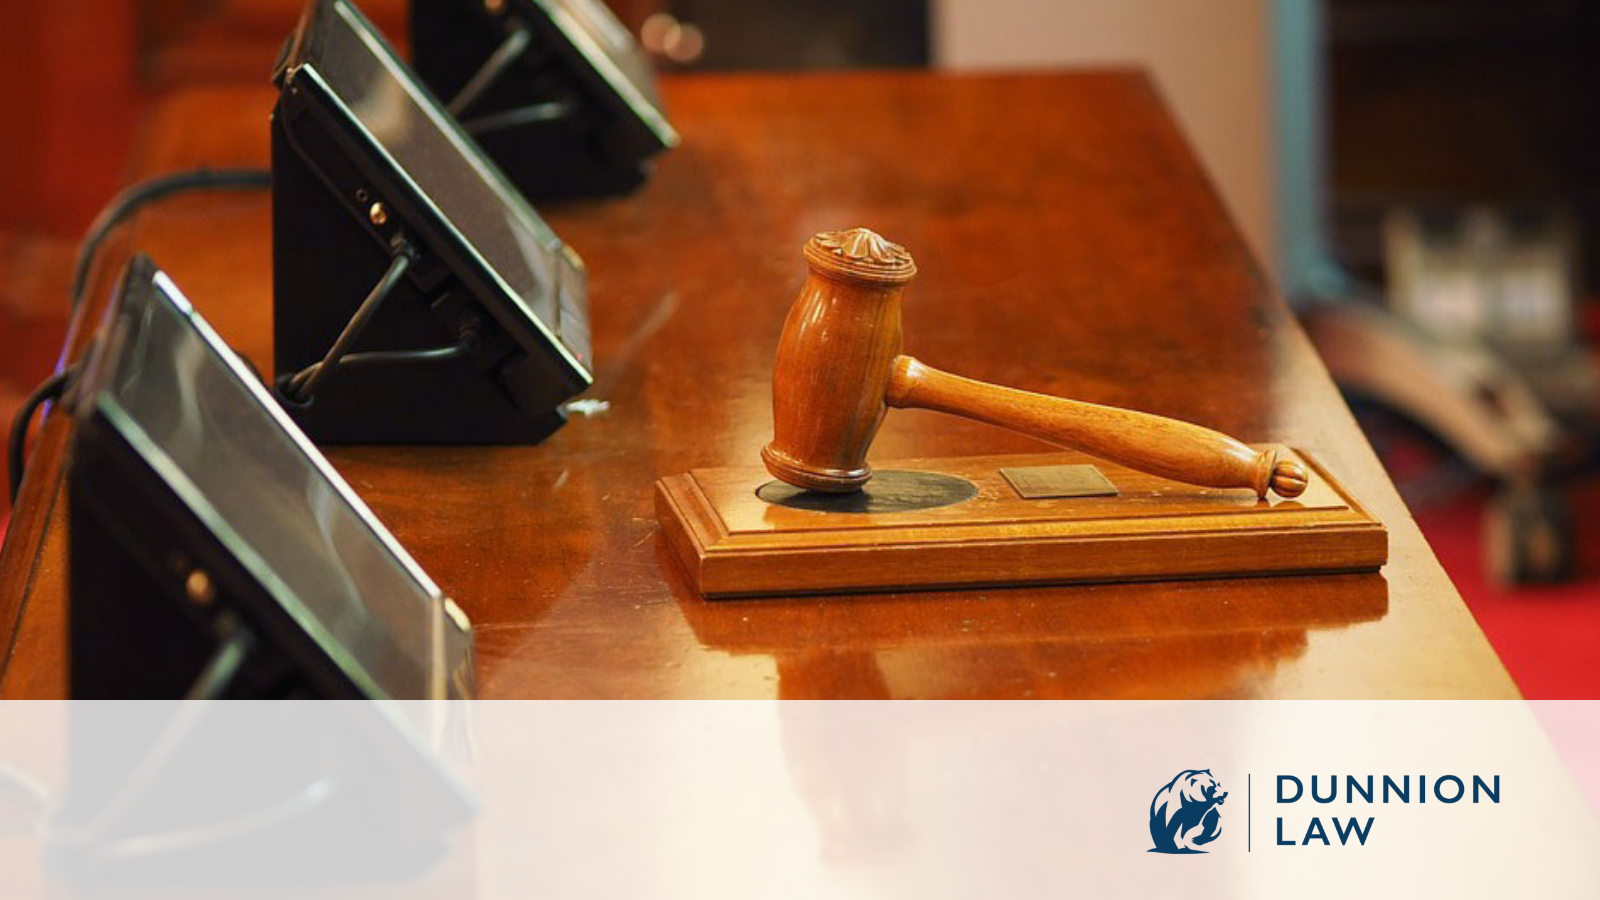 Stock photo of a gavel laying on a table in a courtroom.